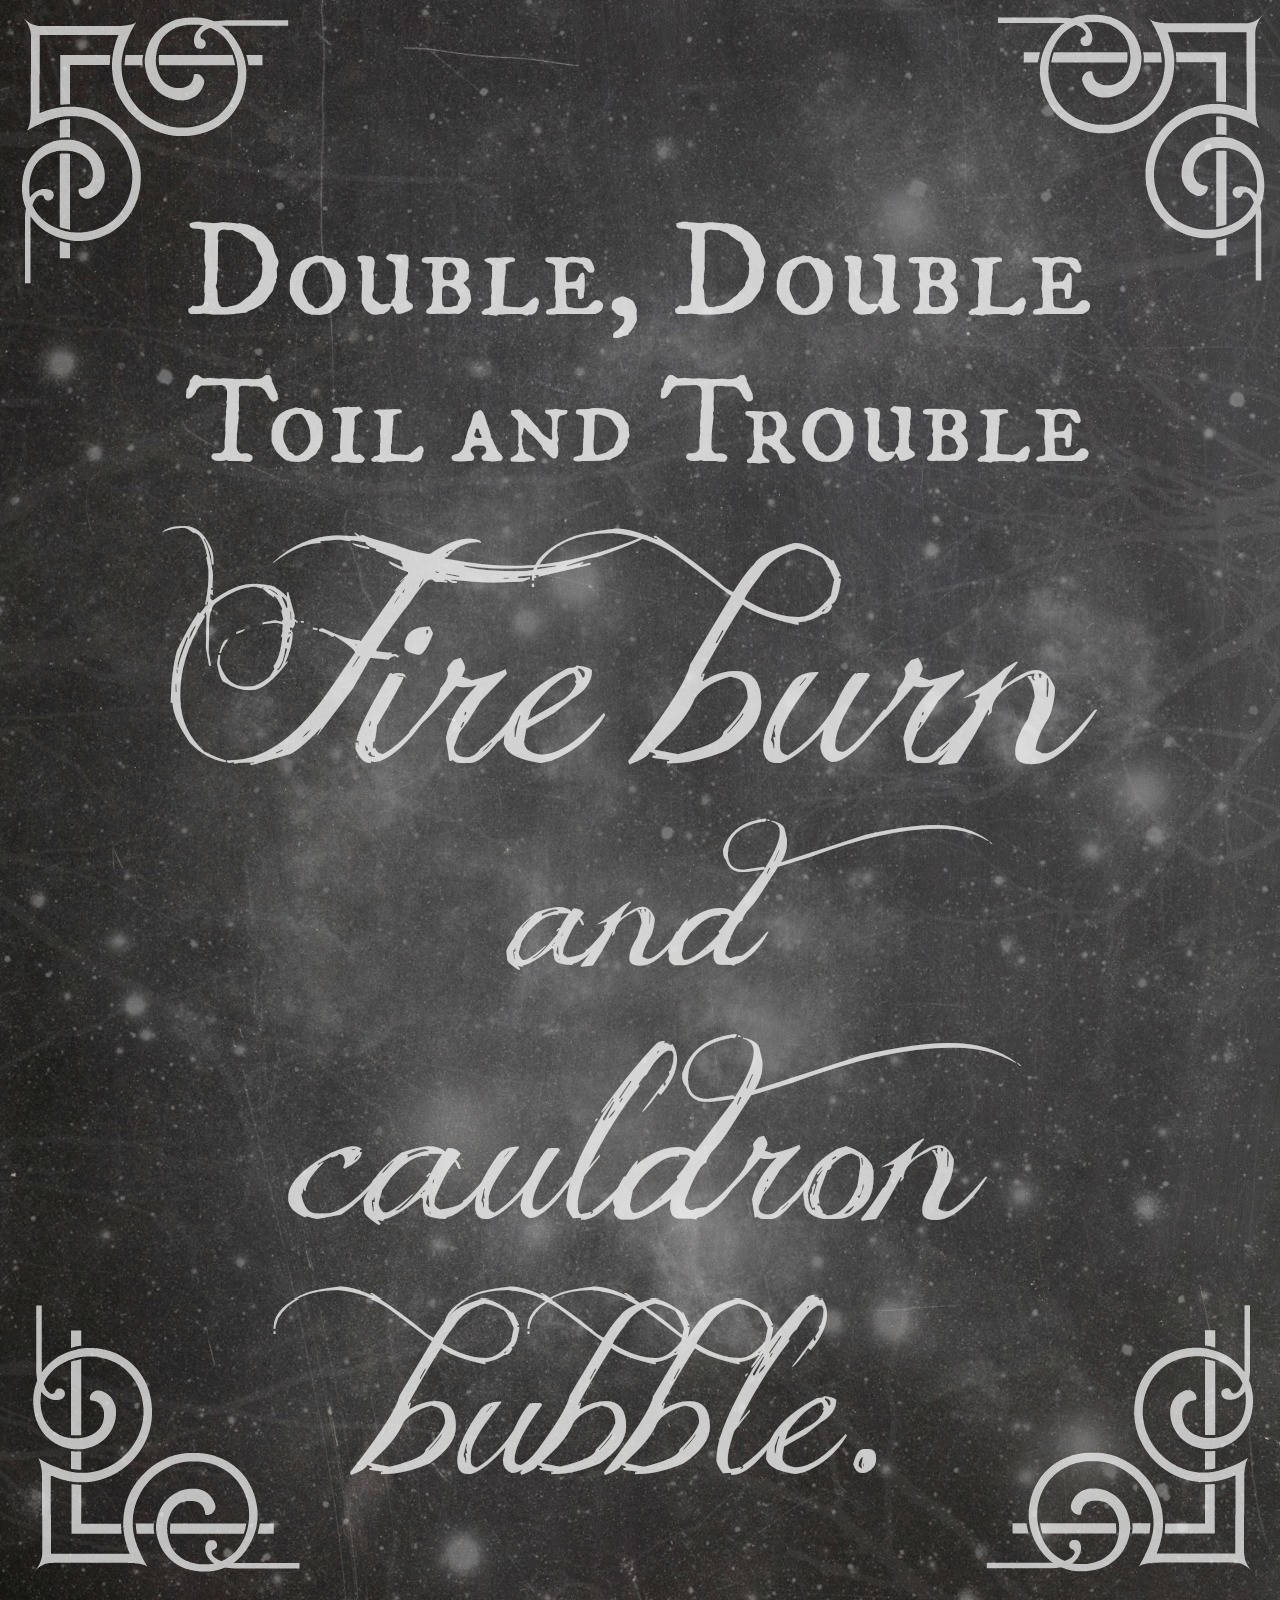 double double toil and trouble the Shakespeare cast the scottish king as the ultimate villain, but you shouldn't believe everything you see on stage or screen.